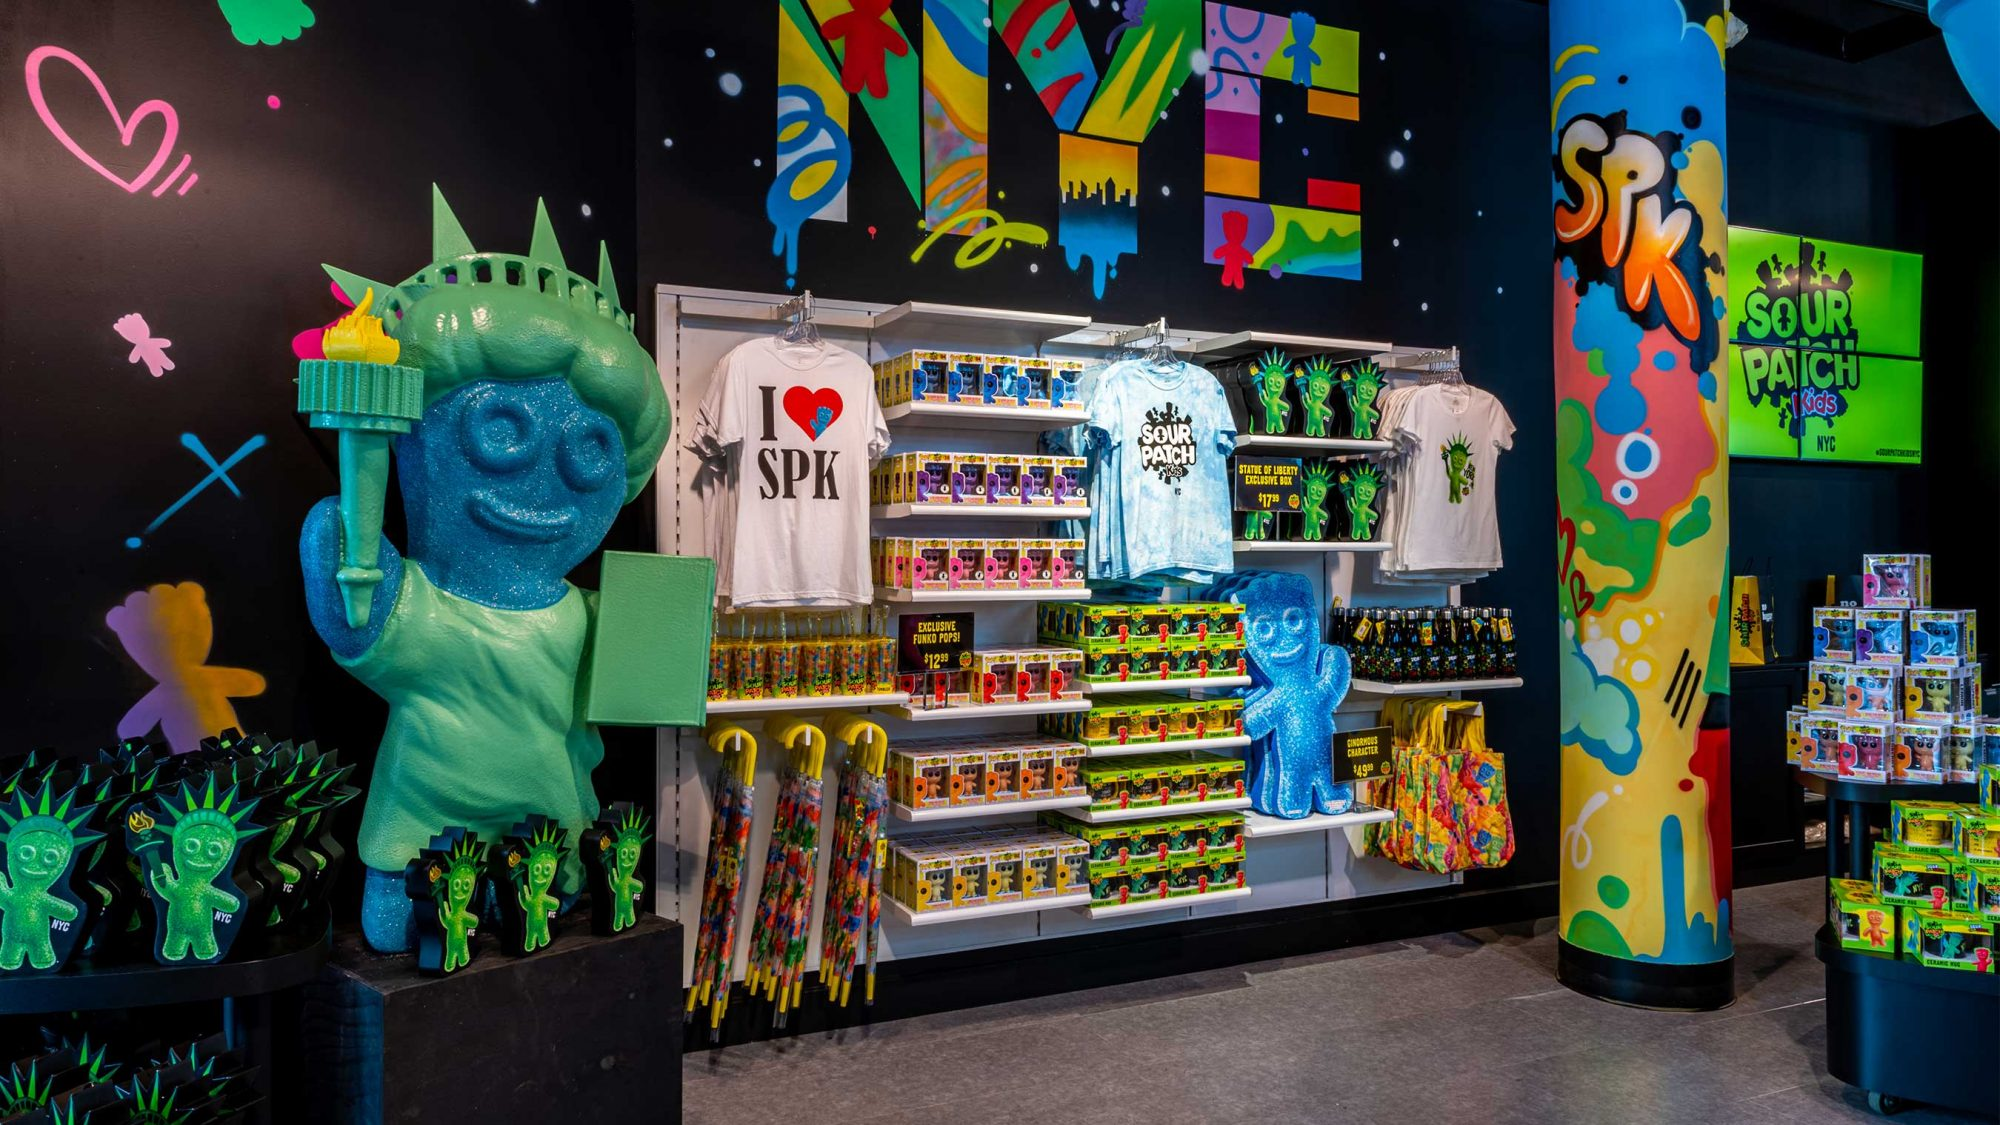 Inside view of sour patch kids store in new york city with hanging shirts and a statue of liberty with sour patch kid